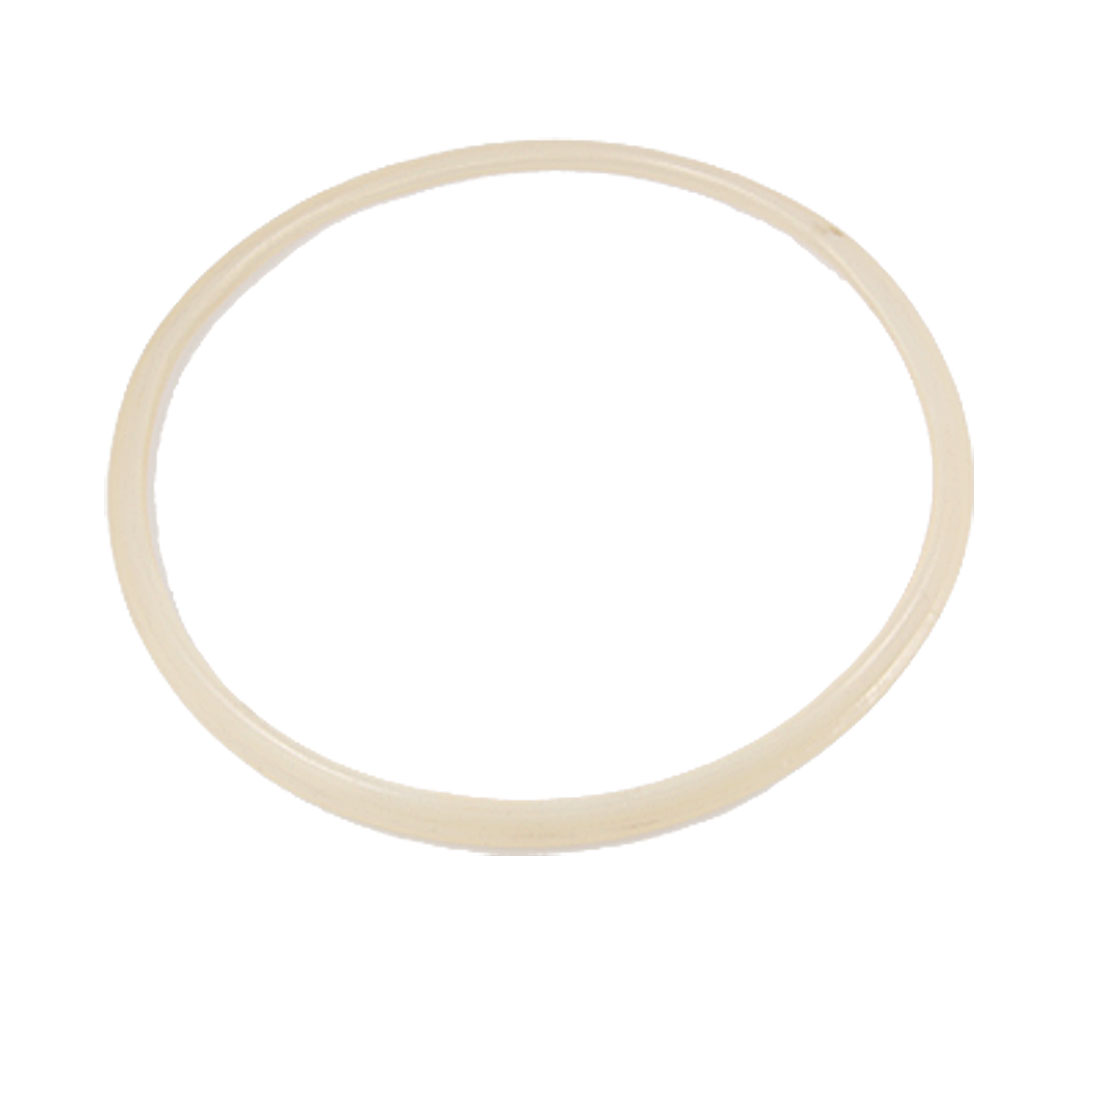 "Replacement Part 12 1/5"" Outside Dia Rubber Gasket Sealing Ring for Pressure Cooker"